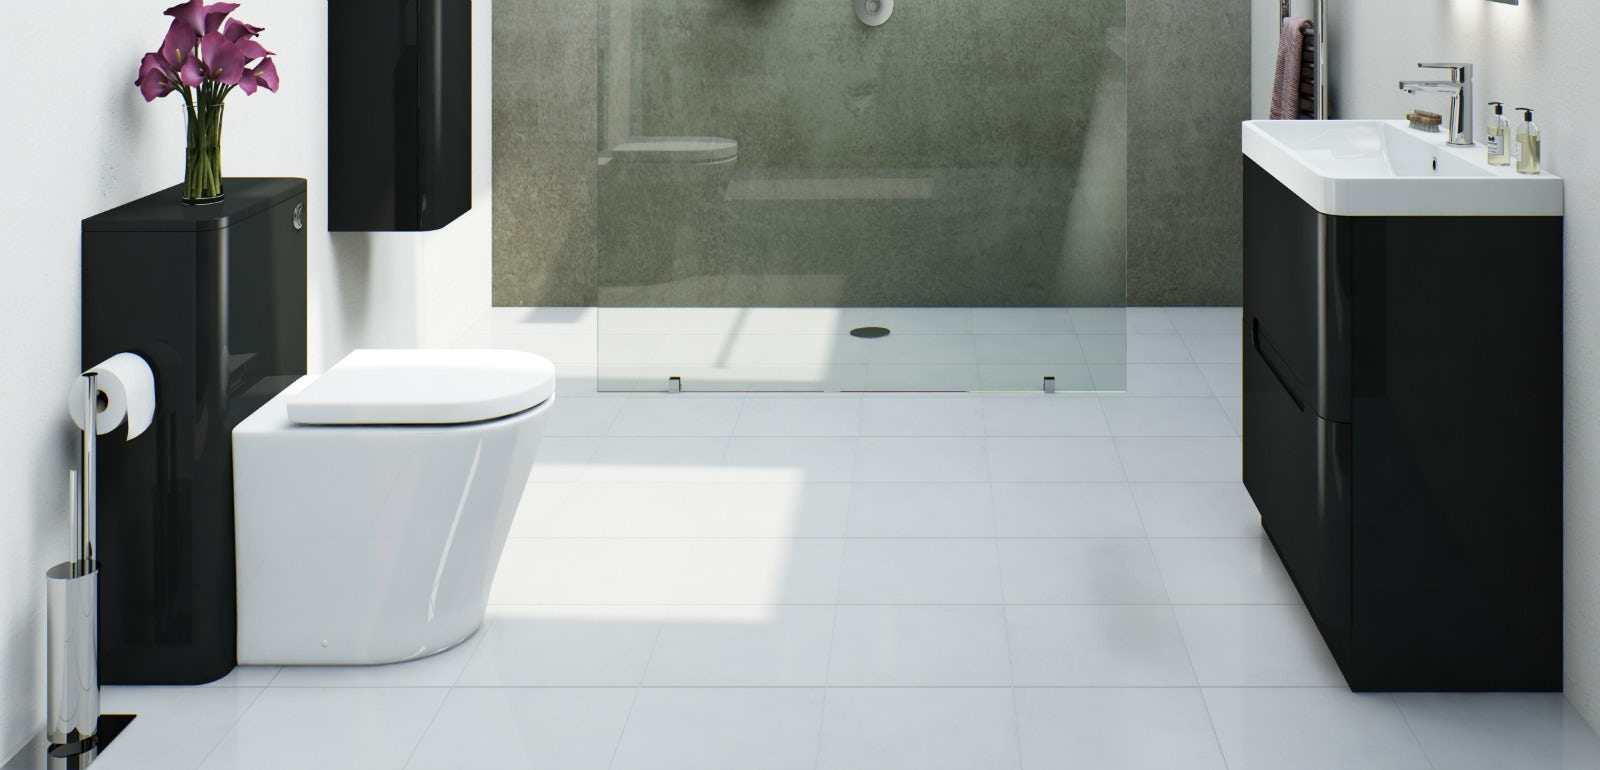 8 reasons why a monochrome bathrooms work for Monochrome bathroom designs